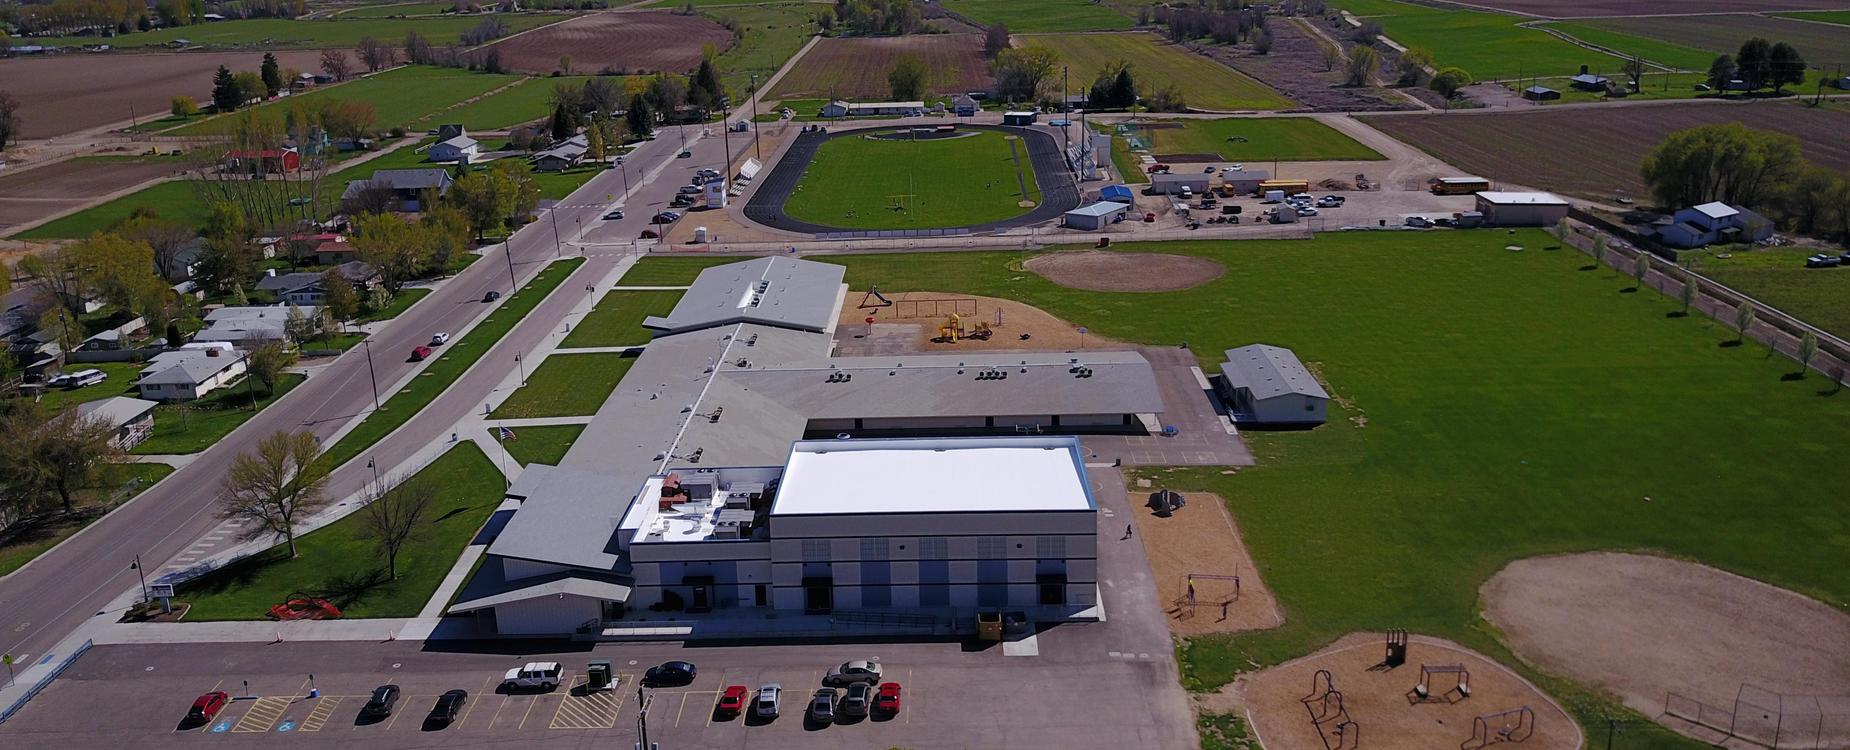 New Plymouth Elementary and Football Field/Track aerial view